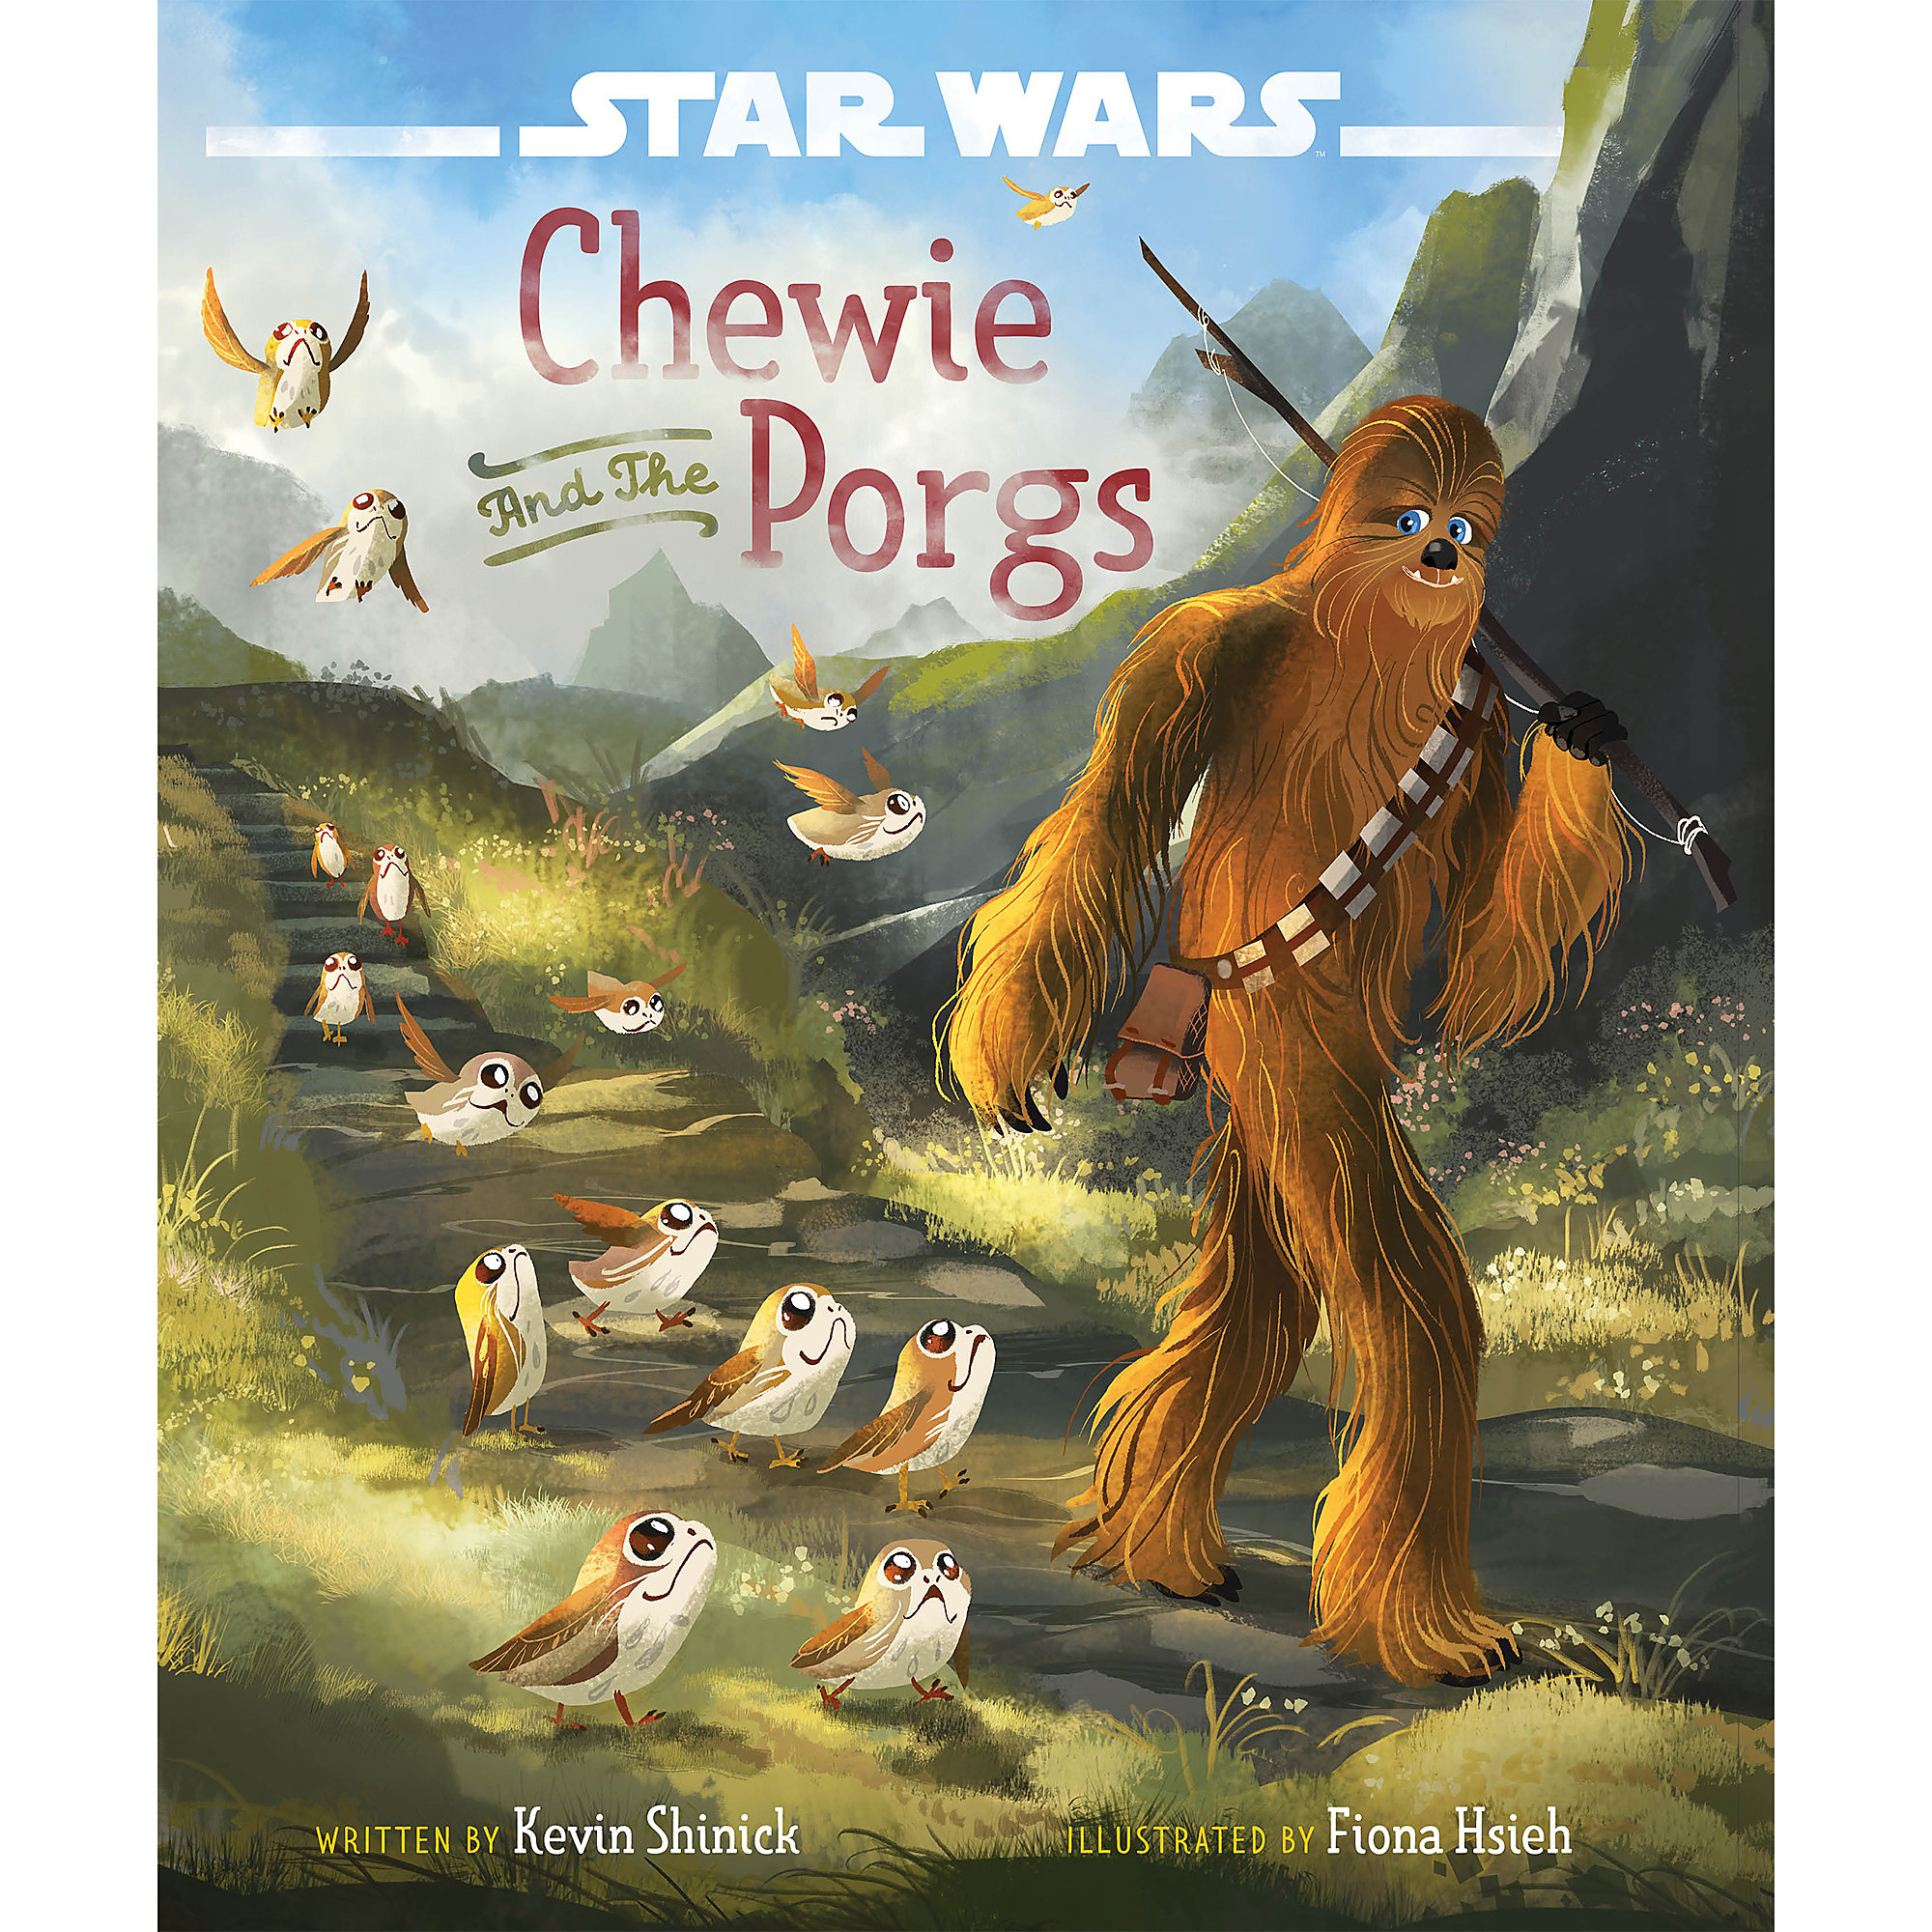 Star Wars: Chewie and the Porgs Book